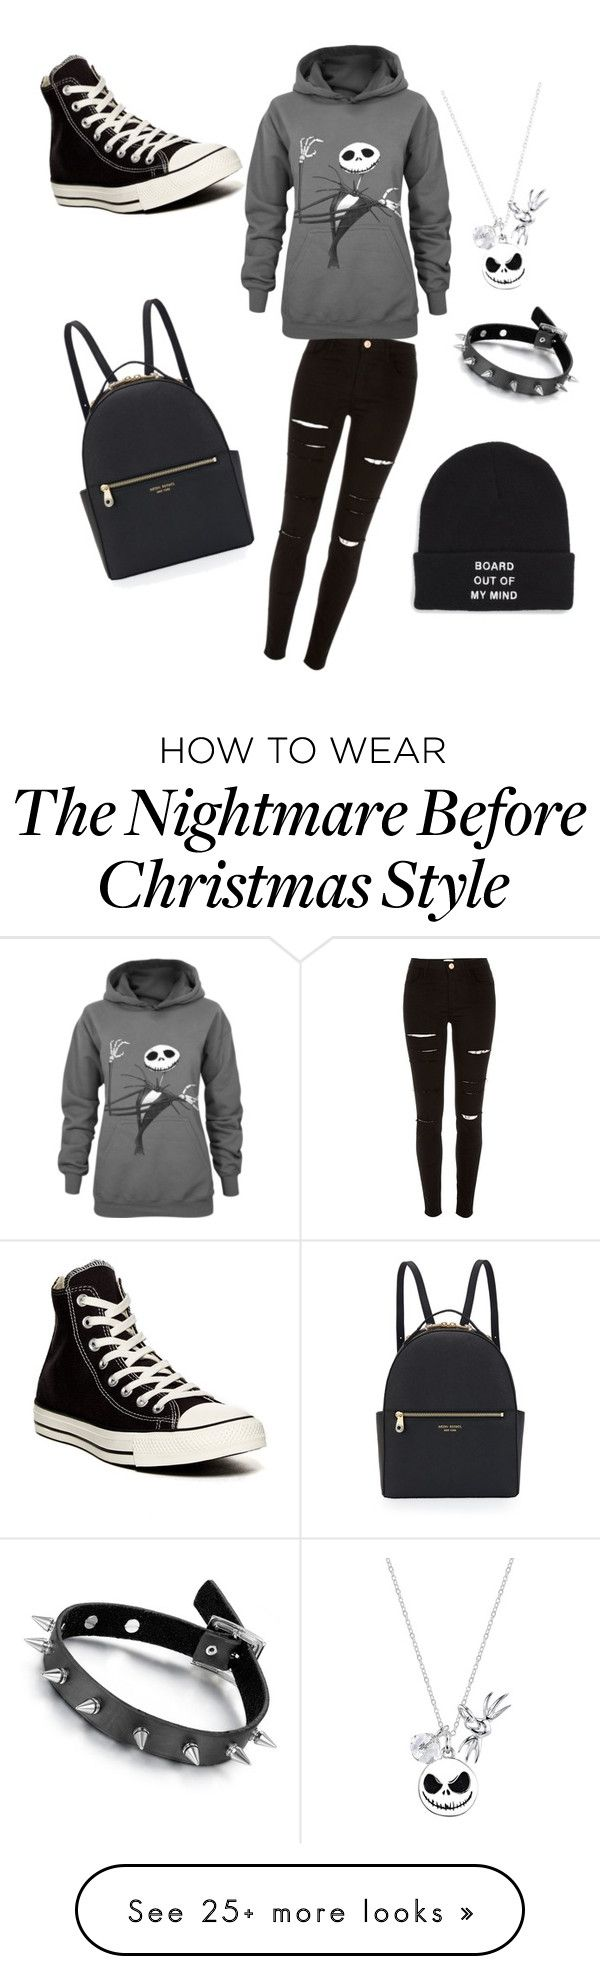 """Untitled #55"" by ellaclapella on Polyvore featuring мода, River Island, Converse, Henri Bendel, Disney, Black Rivet и Vans"